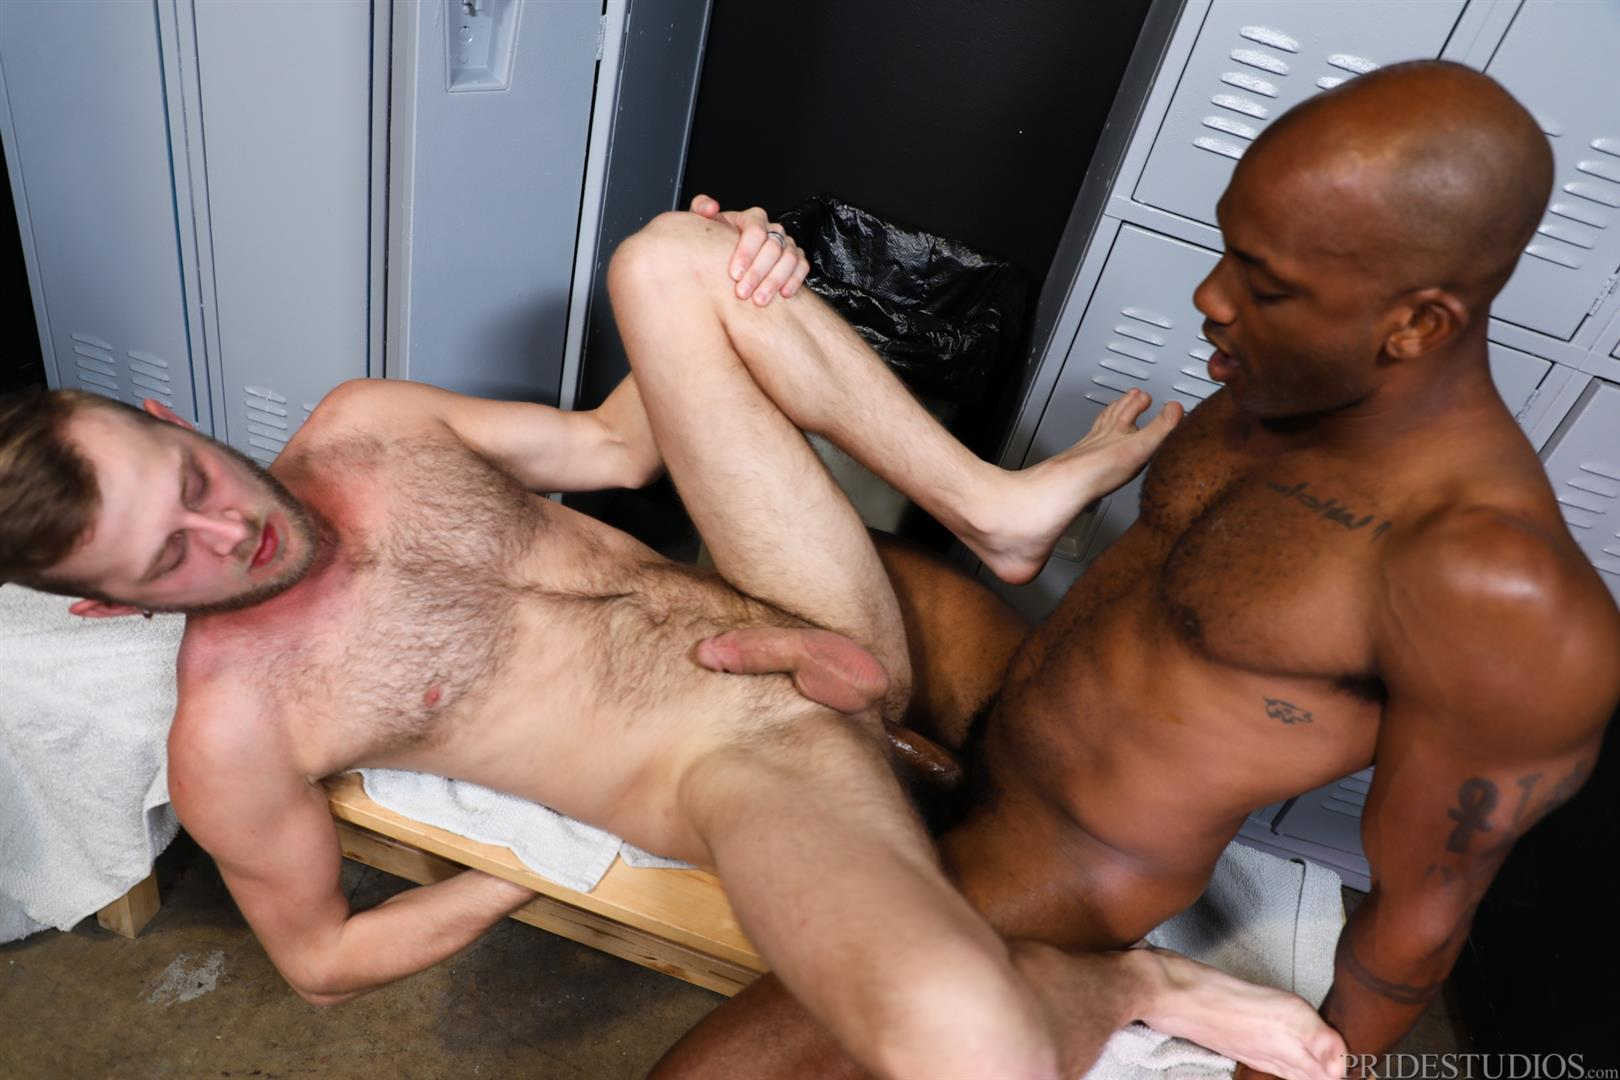 Extra-Big-Dicks-Osiris-Blade-and-Chandler-Scott-Interracial-Bareback-Fucking-14 Osiris Blade Bareback Fucking Chandler Scott With His Big Black Dick